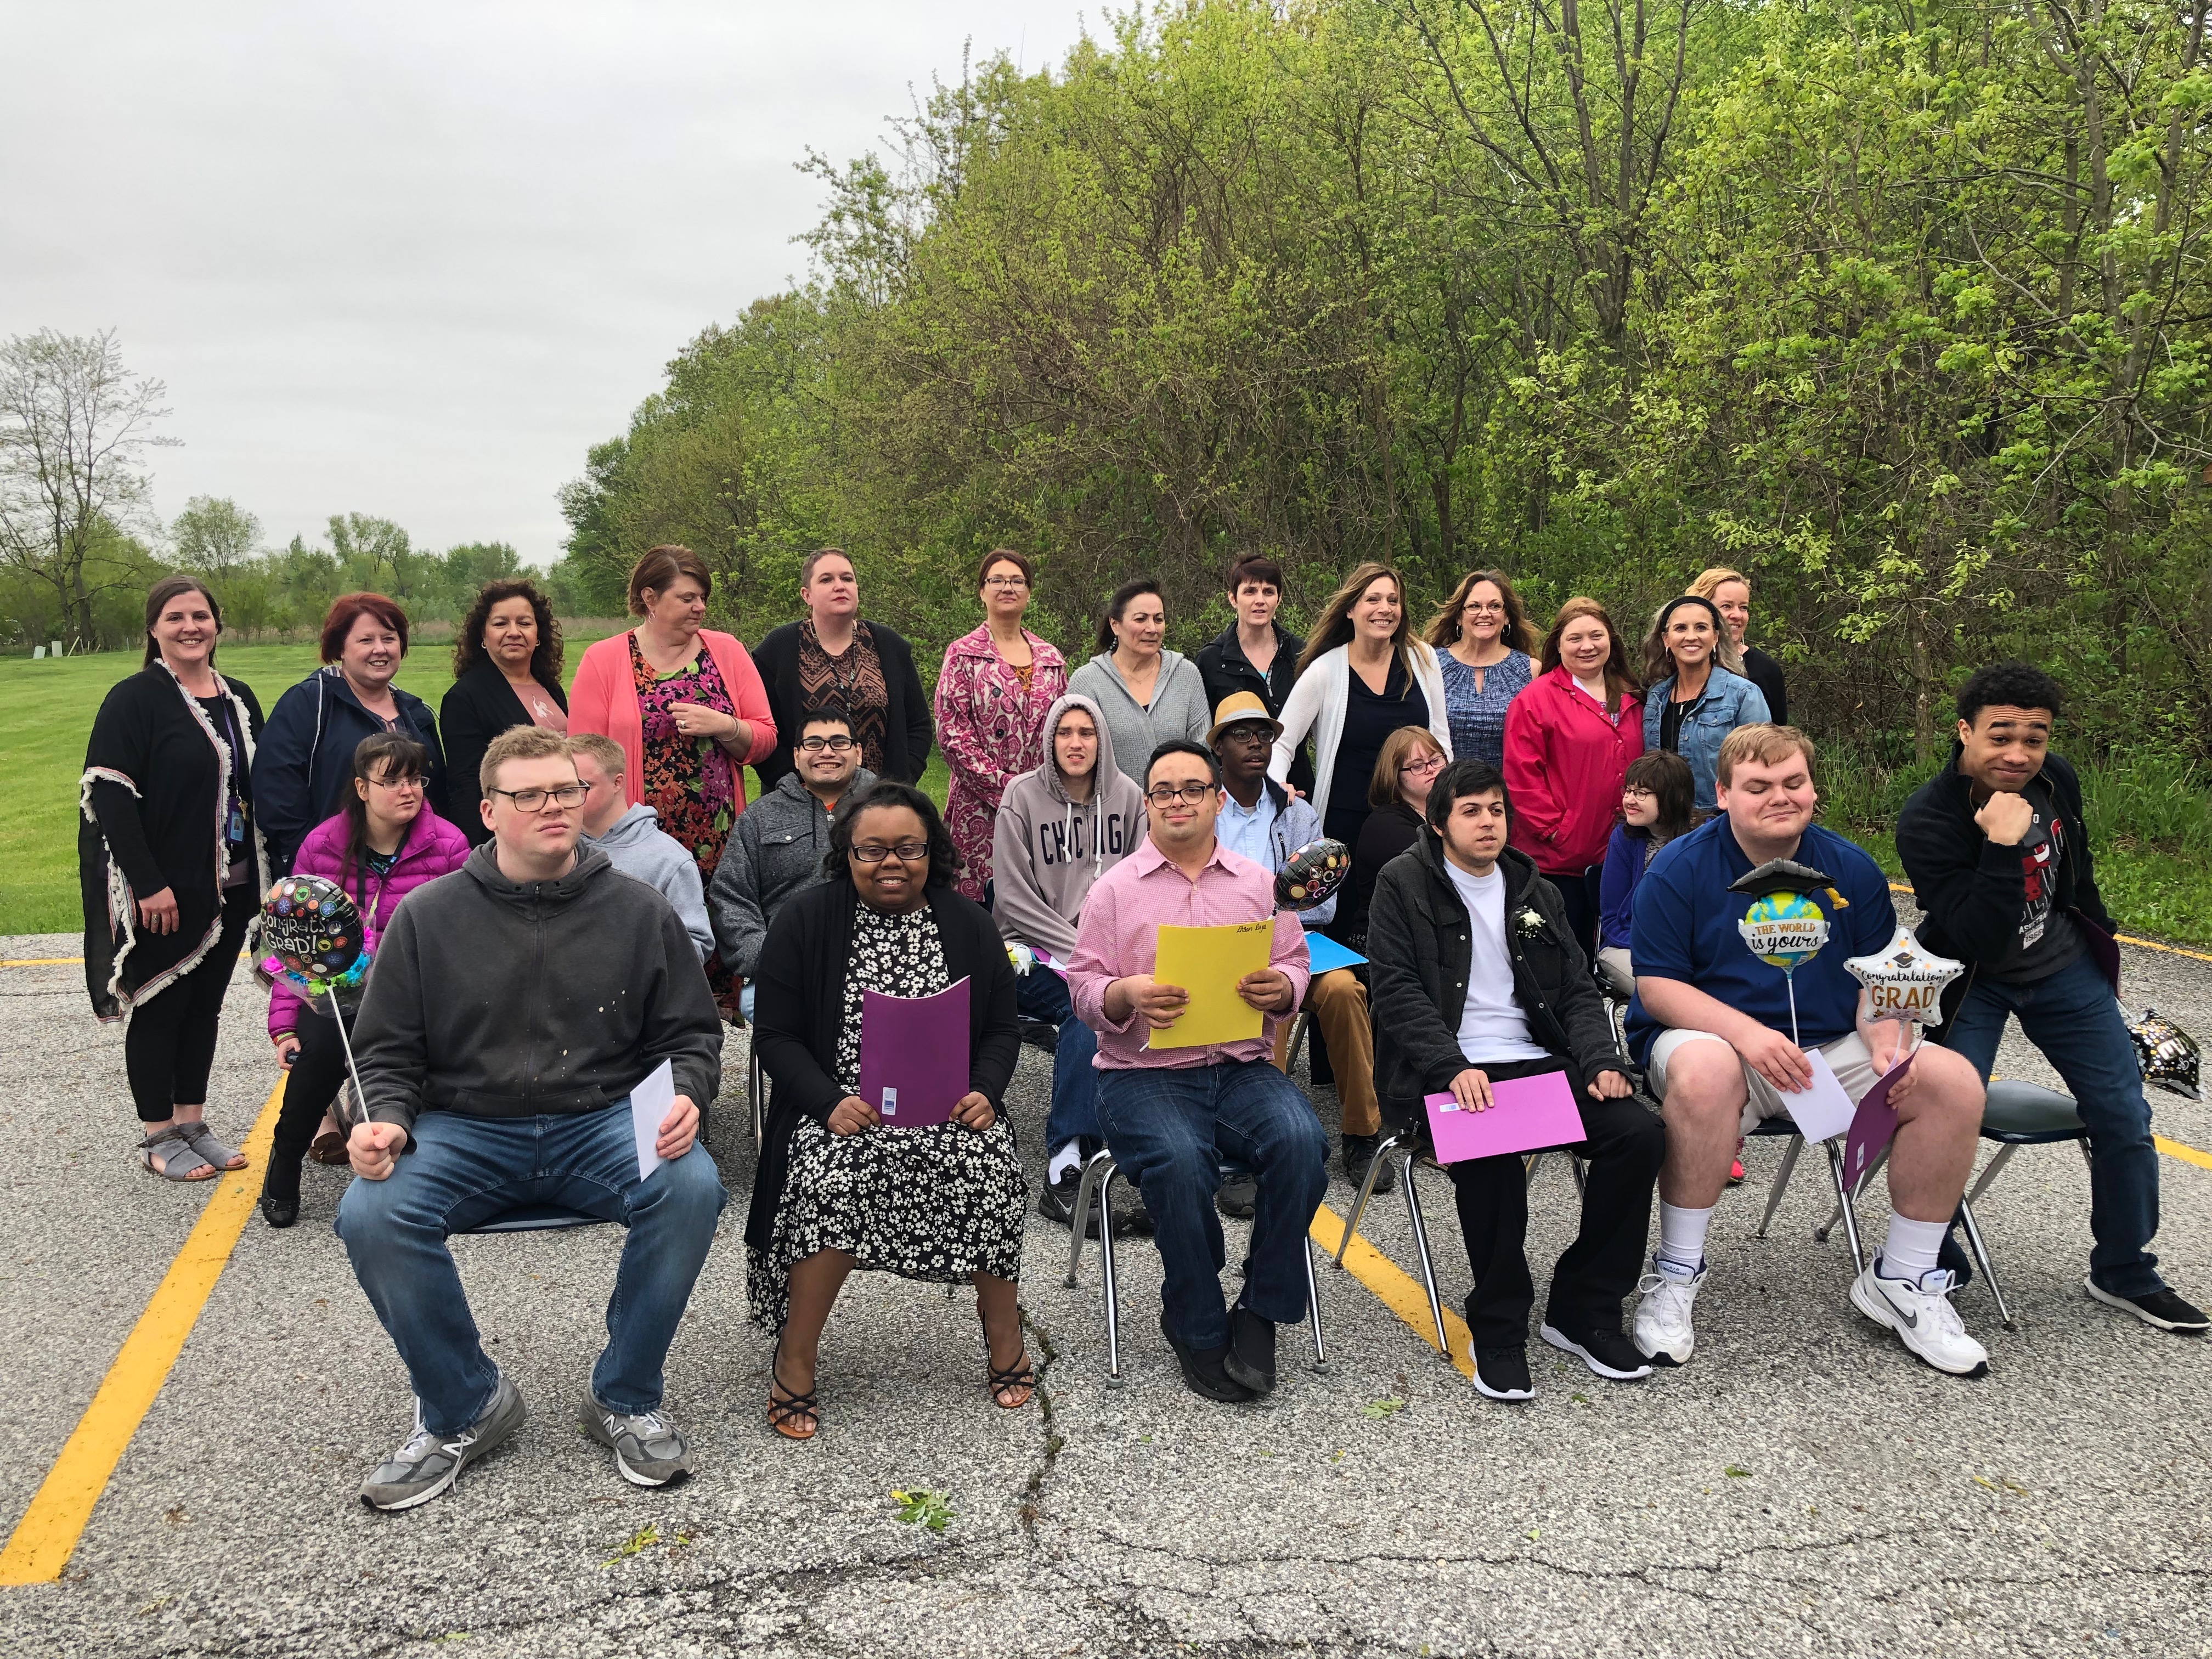 Students and staff at TAP celebrate their final transition to adulthood on May 17, 2019.